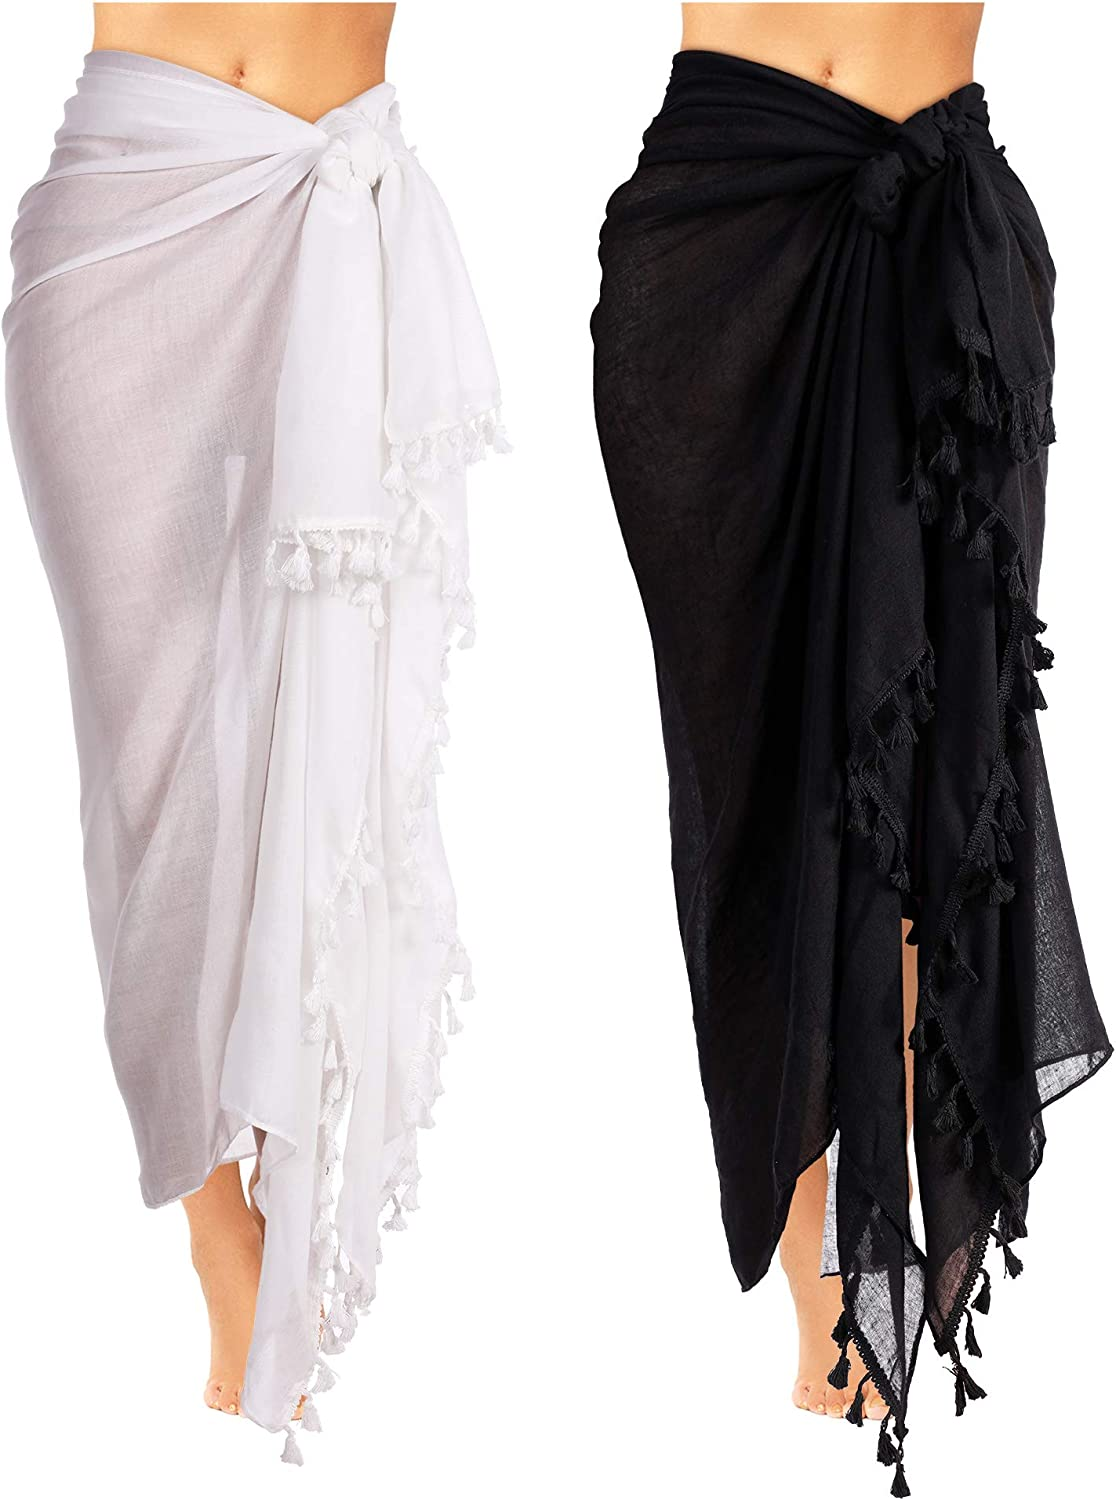 2 Pieces Women Beach Batik Long Sarong Swimsuit Cover Up Wrap Pareo With Tassel For Women Girls At Amazon Women S Clothing Store